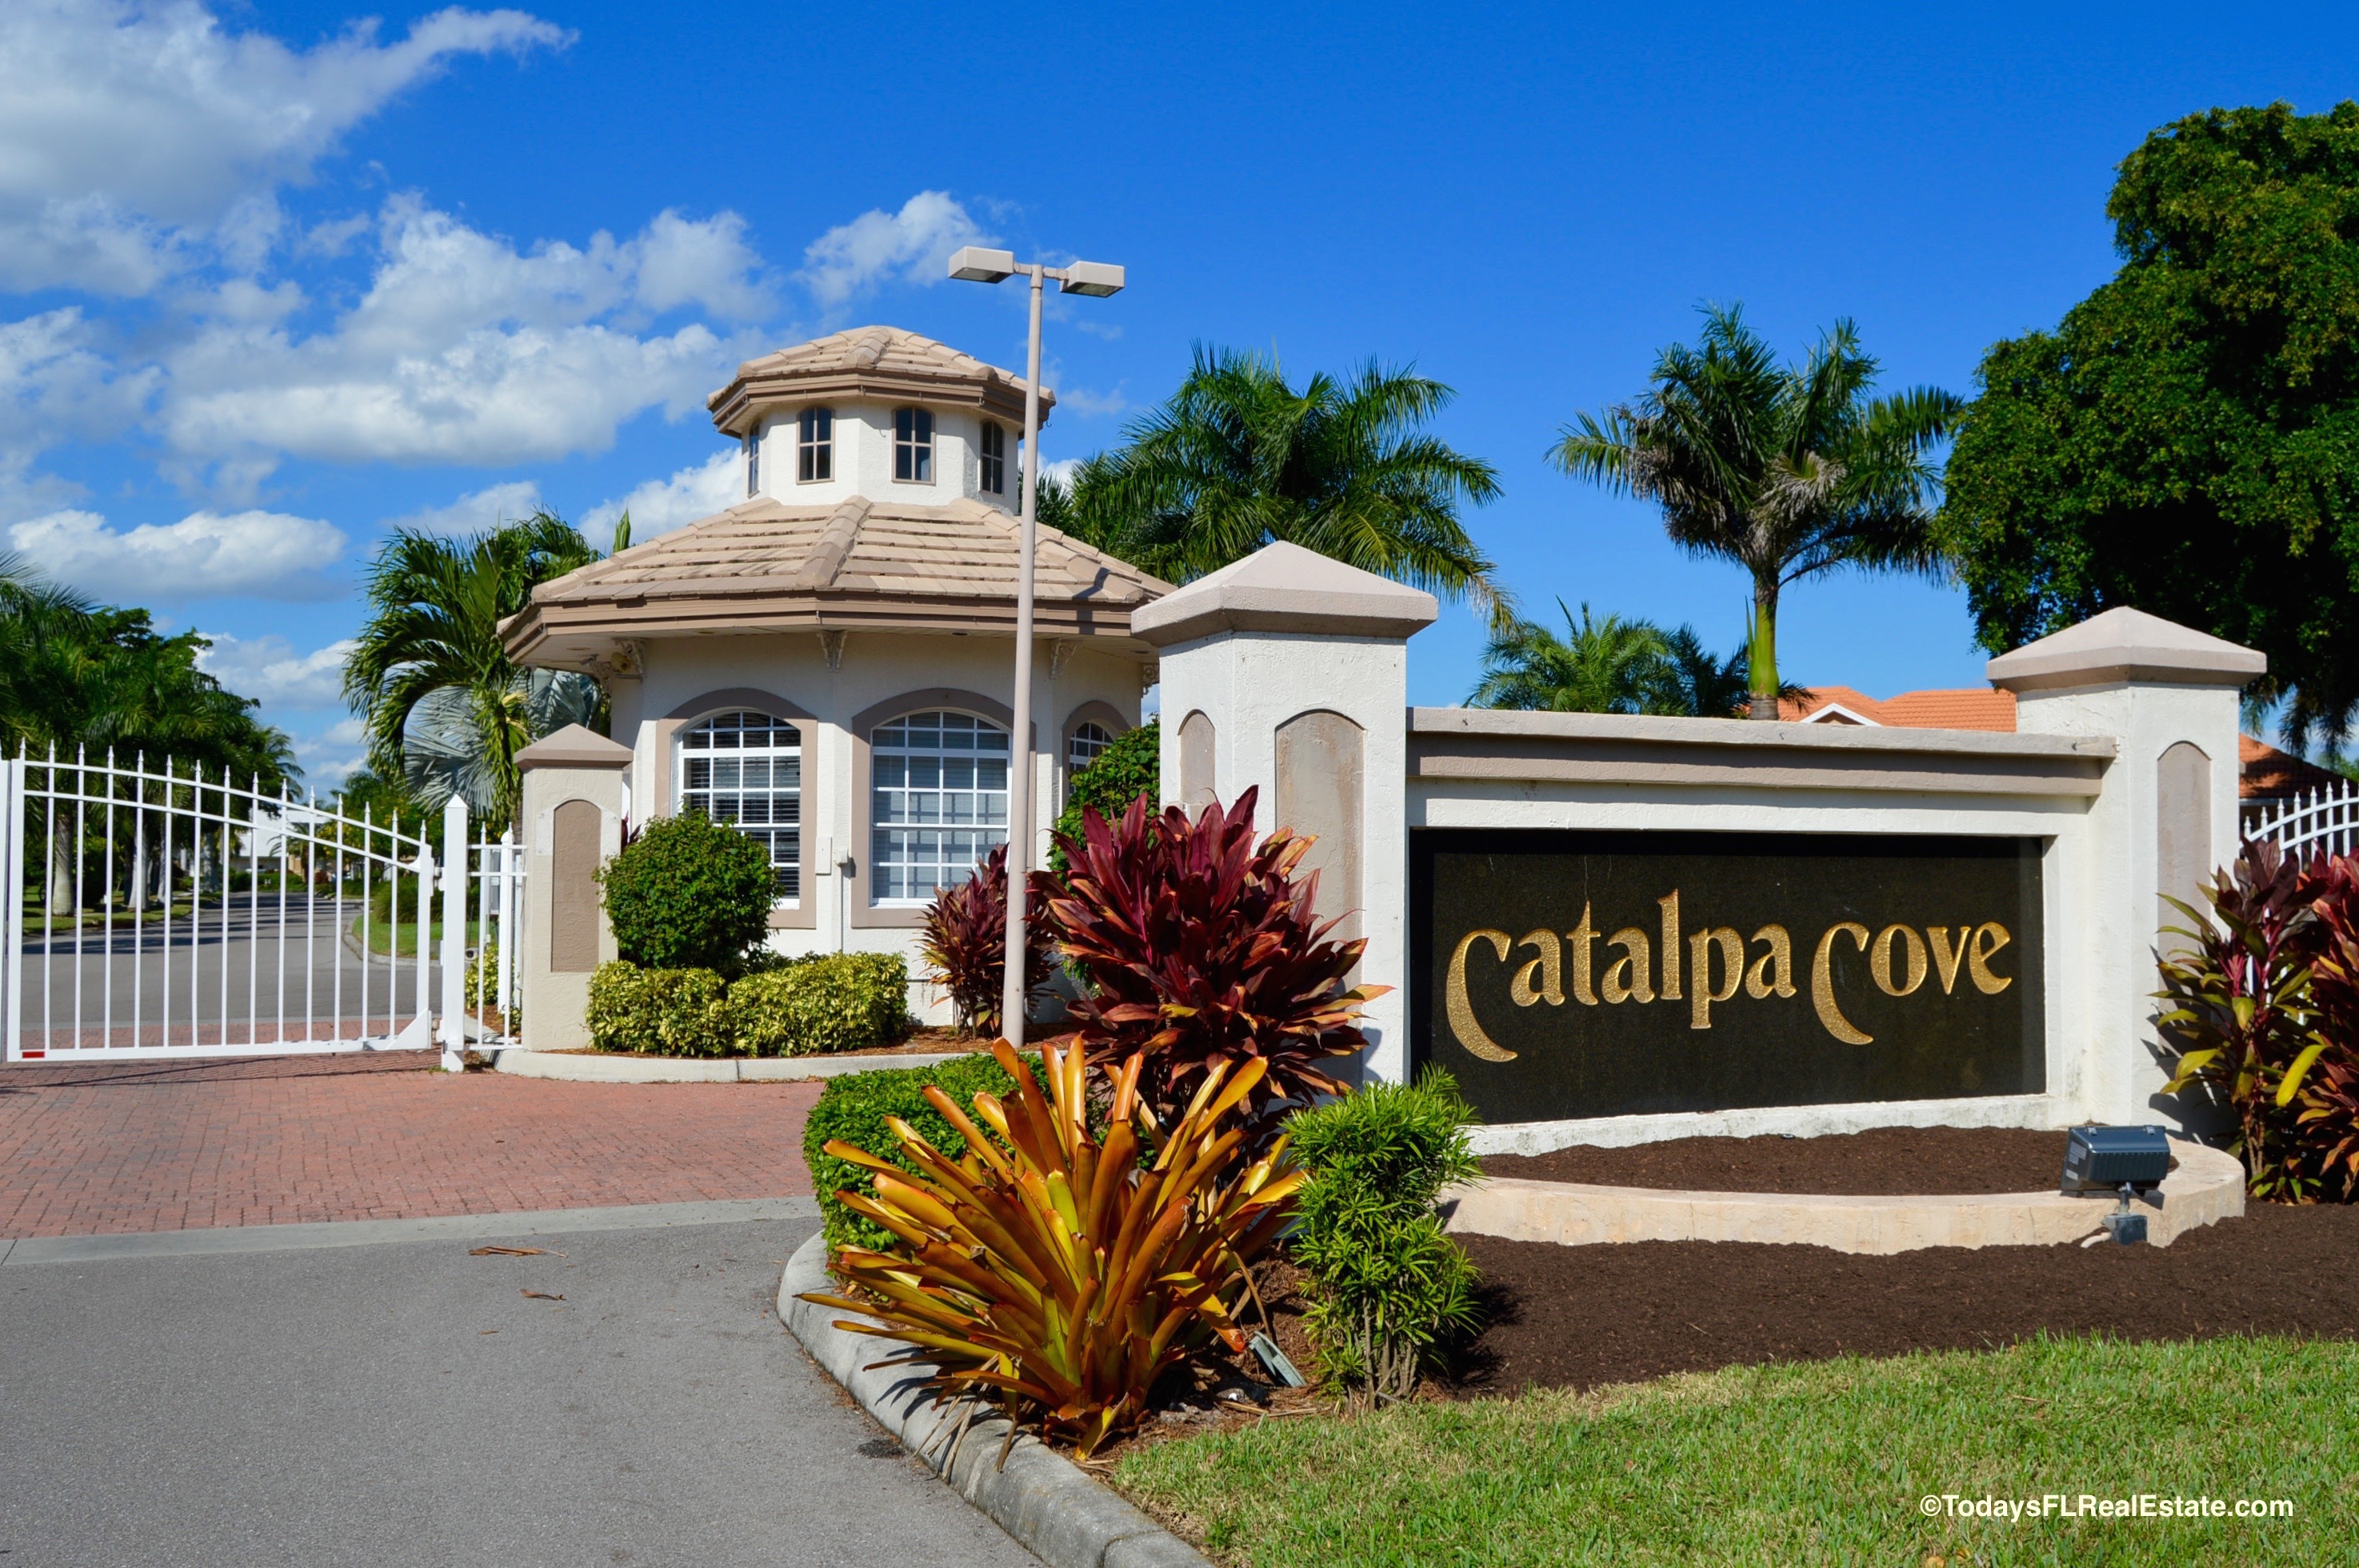 waterfront communities in fort myers florida waterfront real rh todaysfloridahome com waterfront homes for sale fort myers beach florida